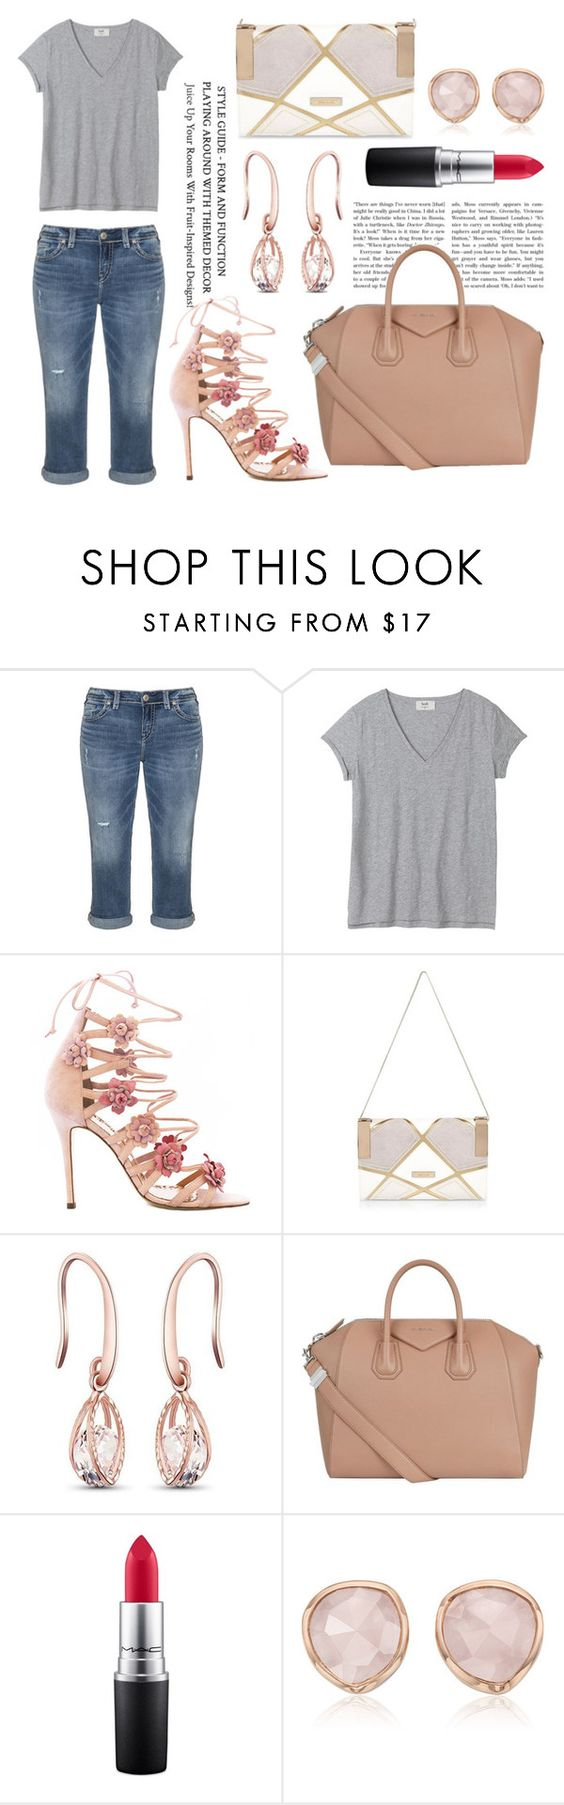 """""""coming in soon"""" by soidi-illis ❤ liked on Polyvore featuring Silver Jeans Co., Marchesa, River Island, Givenchy, MAC Cosmetics and Monica Vinader"""